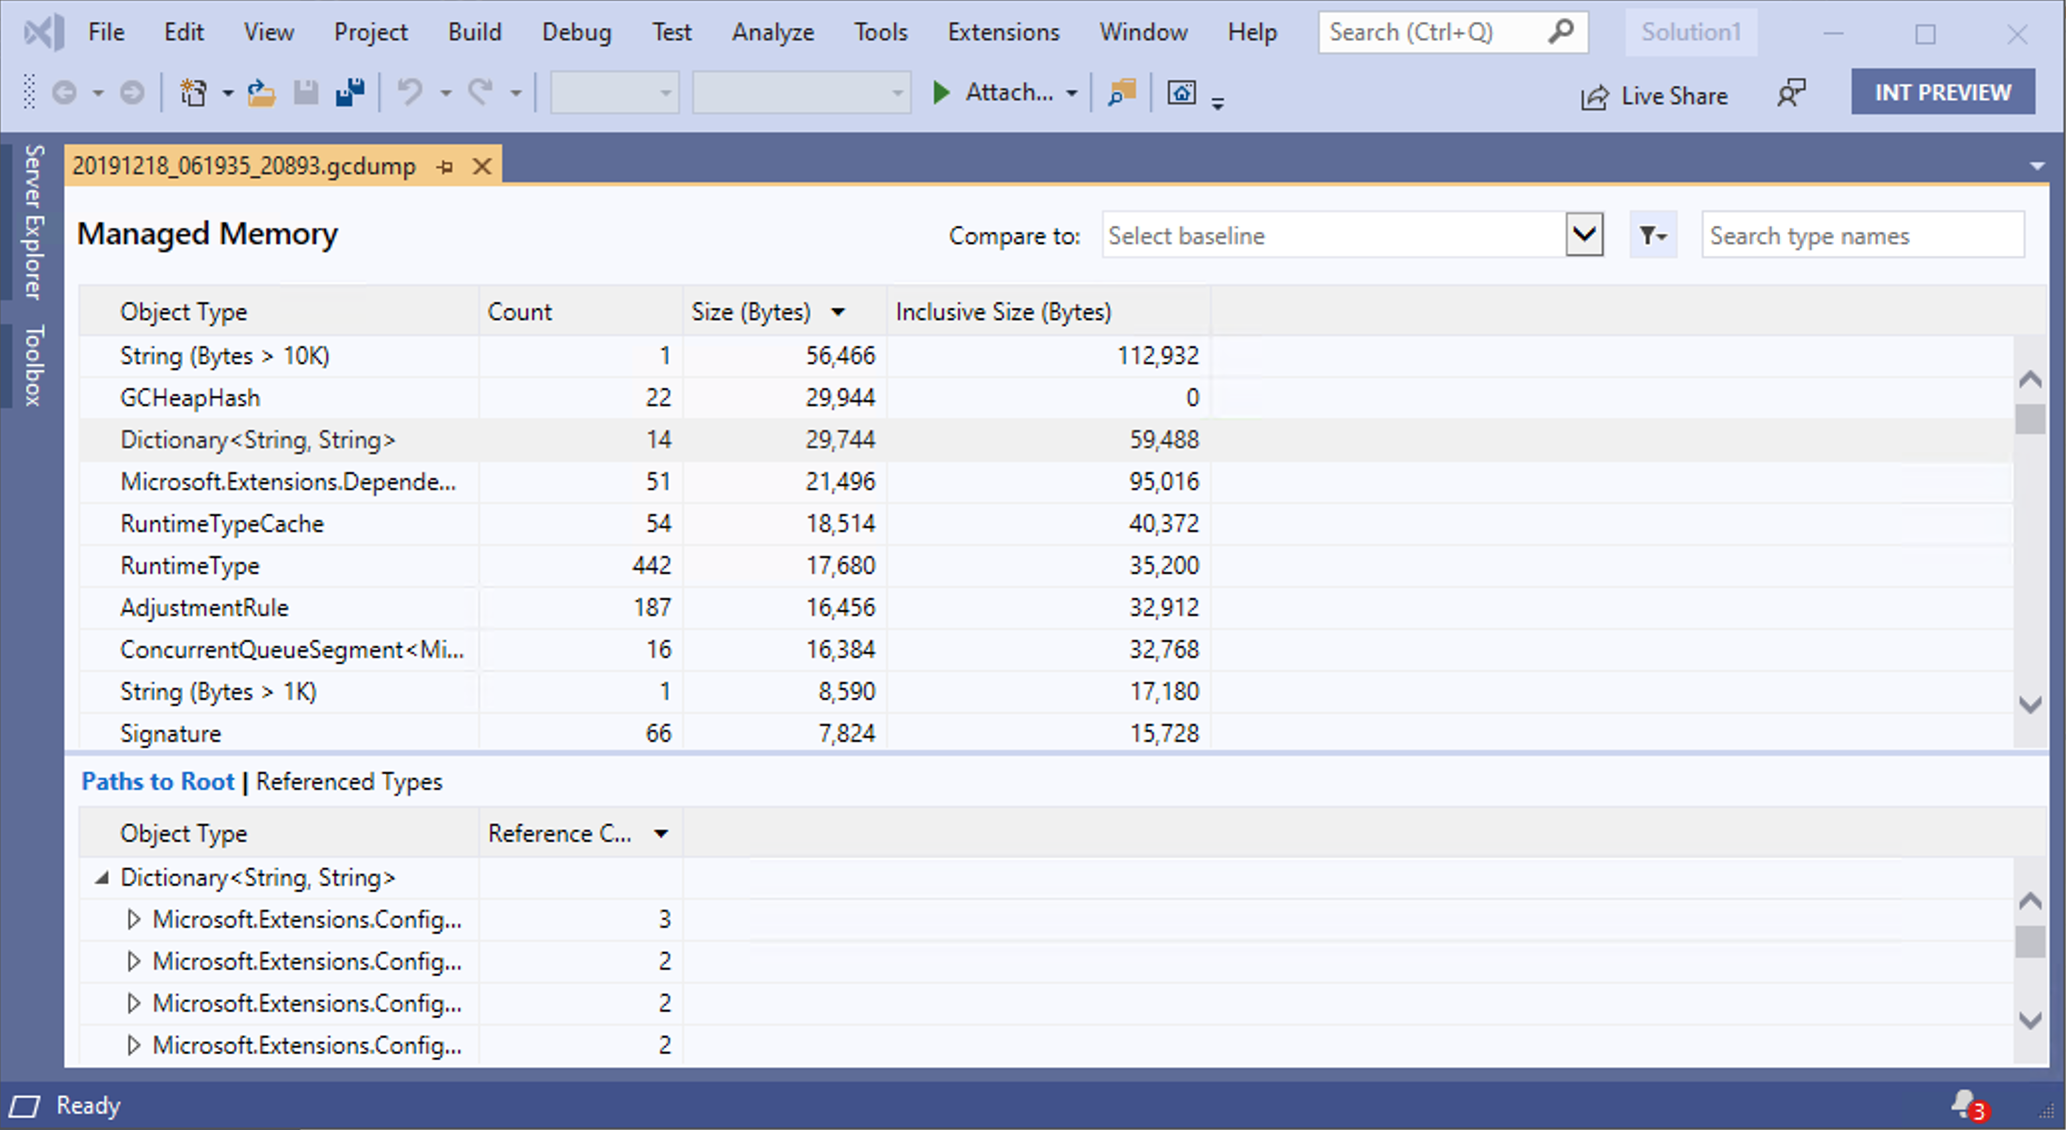 Memory analysis report in Visual Studio 2019